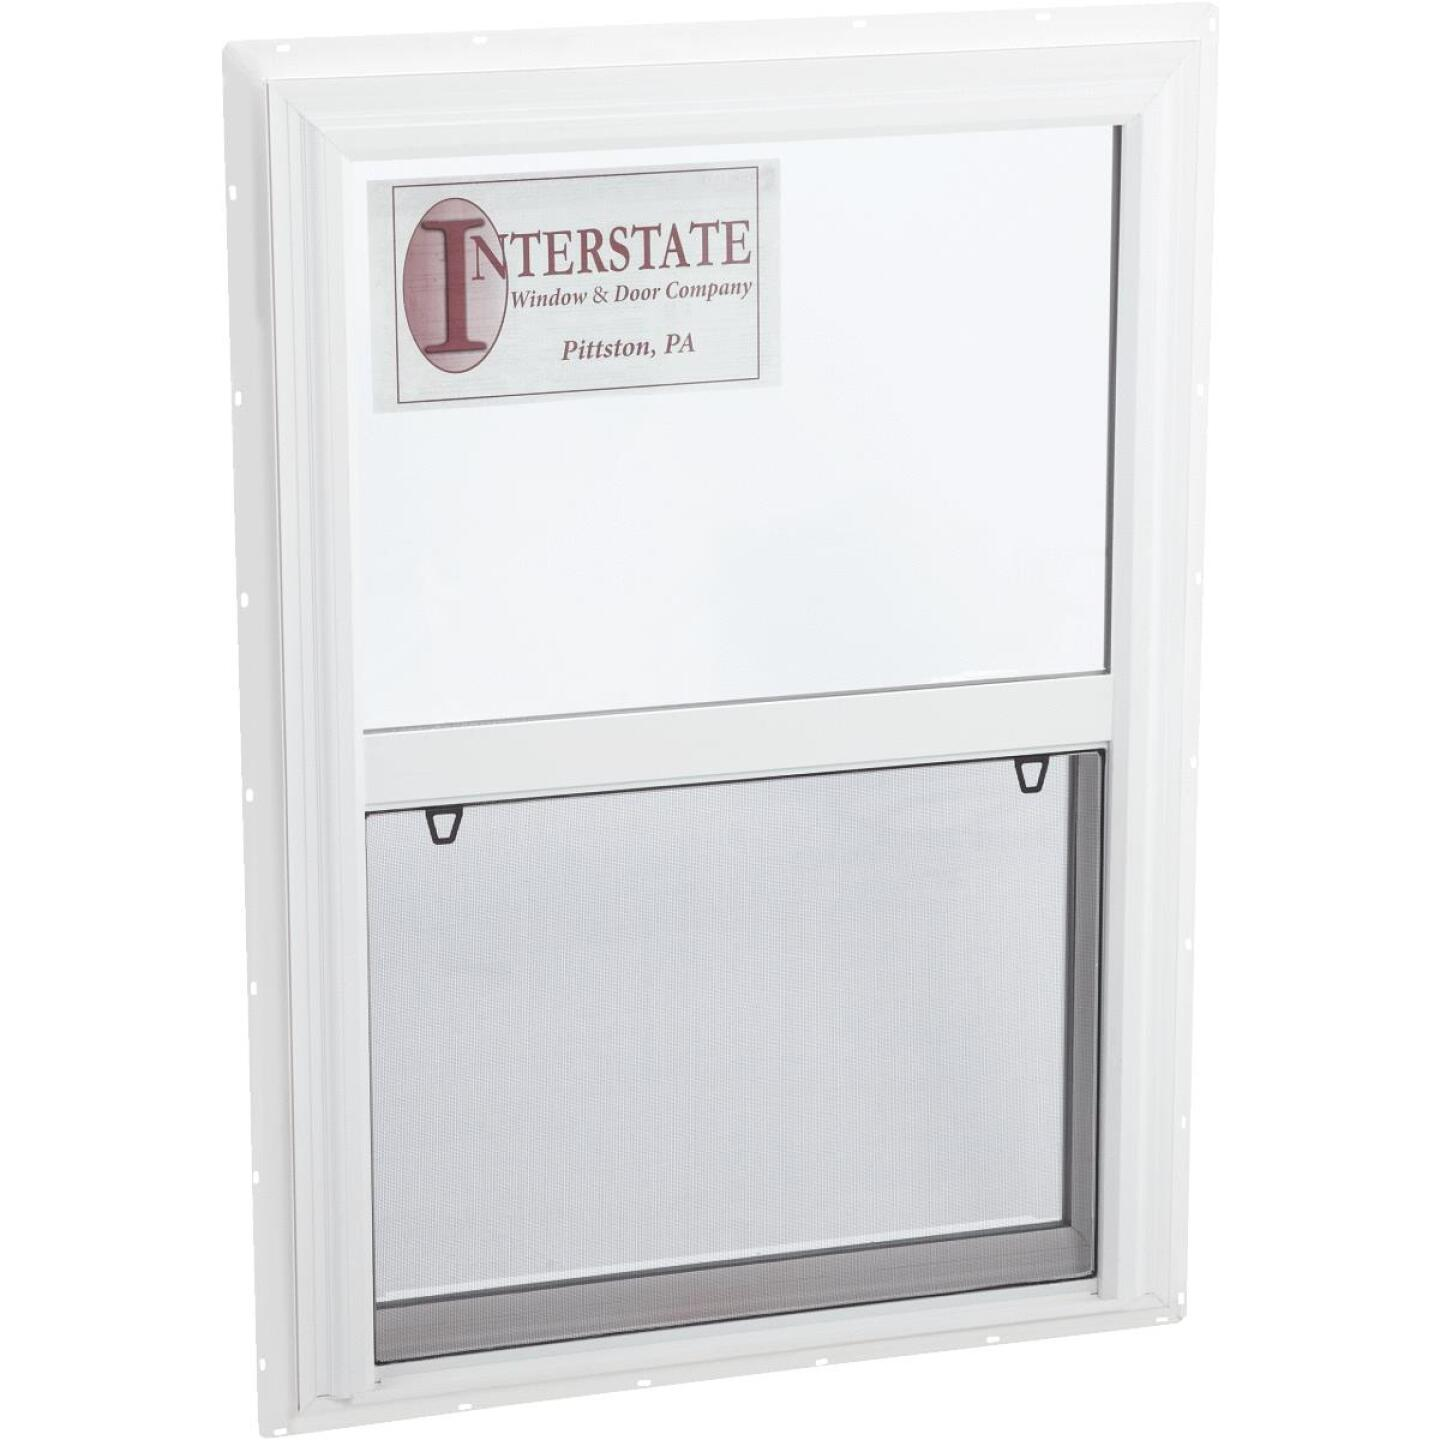 Interstate Model 5100 36 In. W. x 48 In. H. White Single Hung Window Image 1